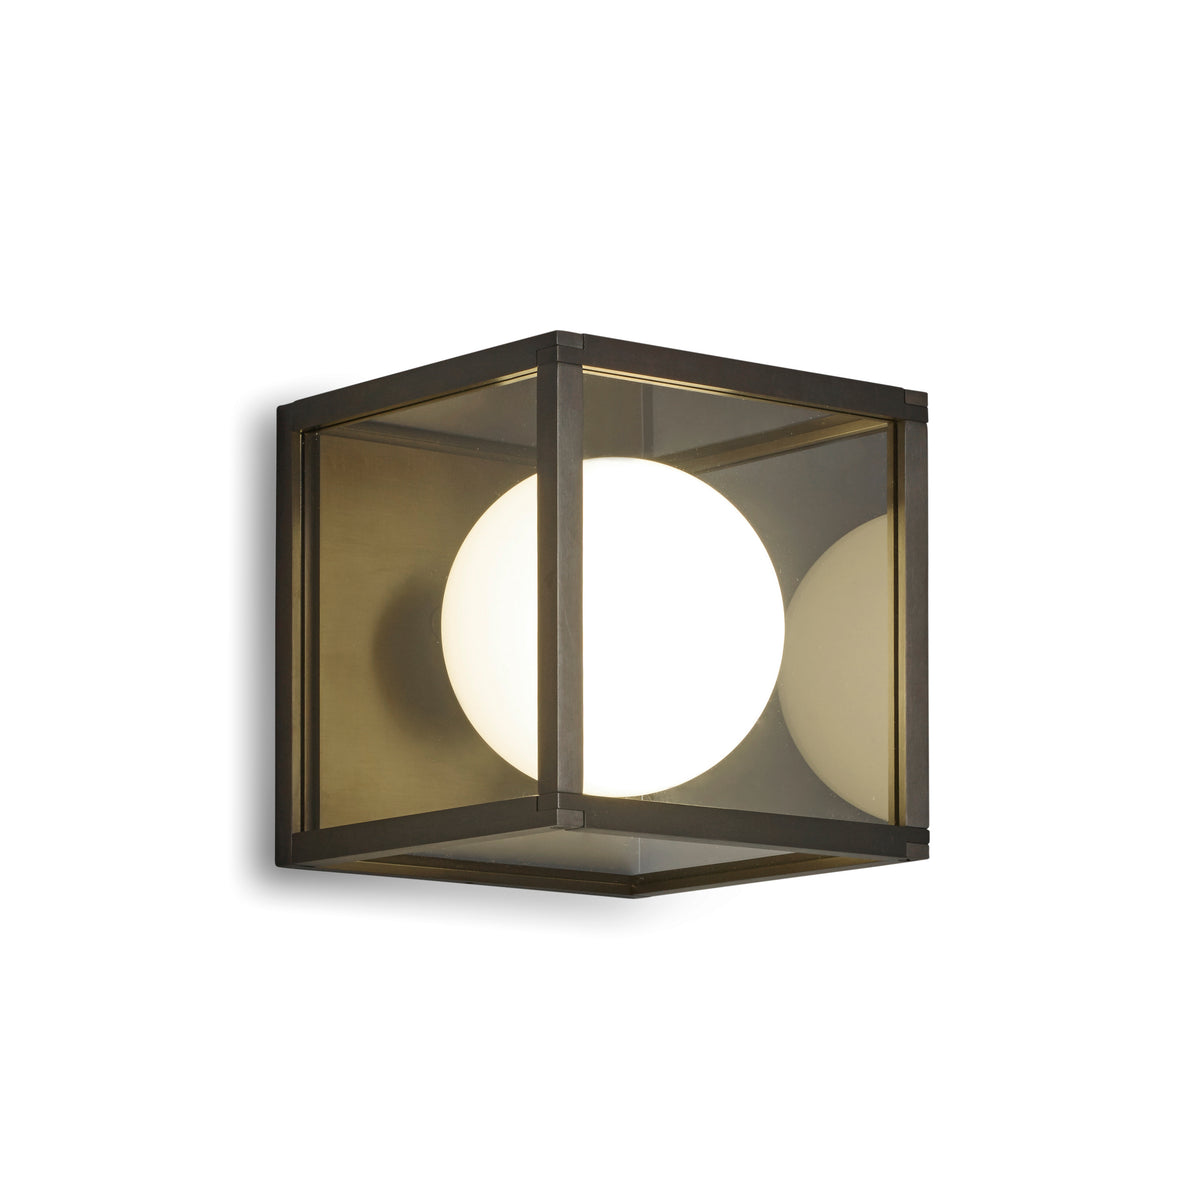 Pearl 1 Wall Light